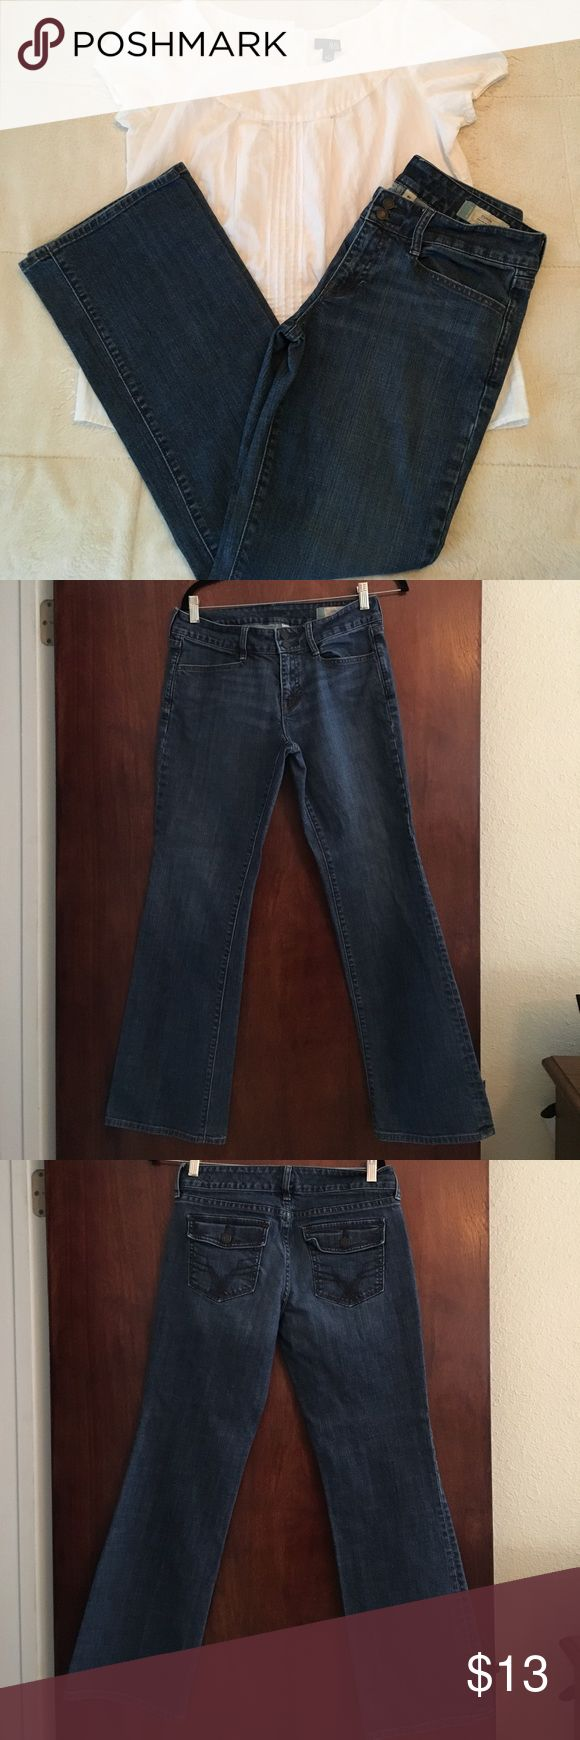 Gap curvy jeans, size 8 Gap curvy jeans, size 8, top not included GAP Jeans Boot Cut